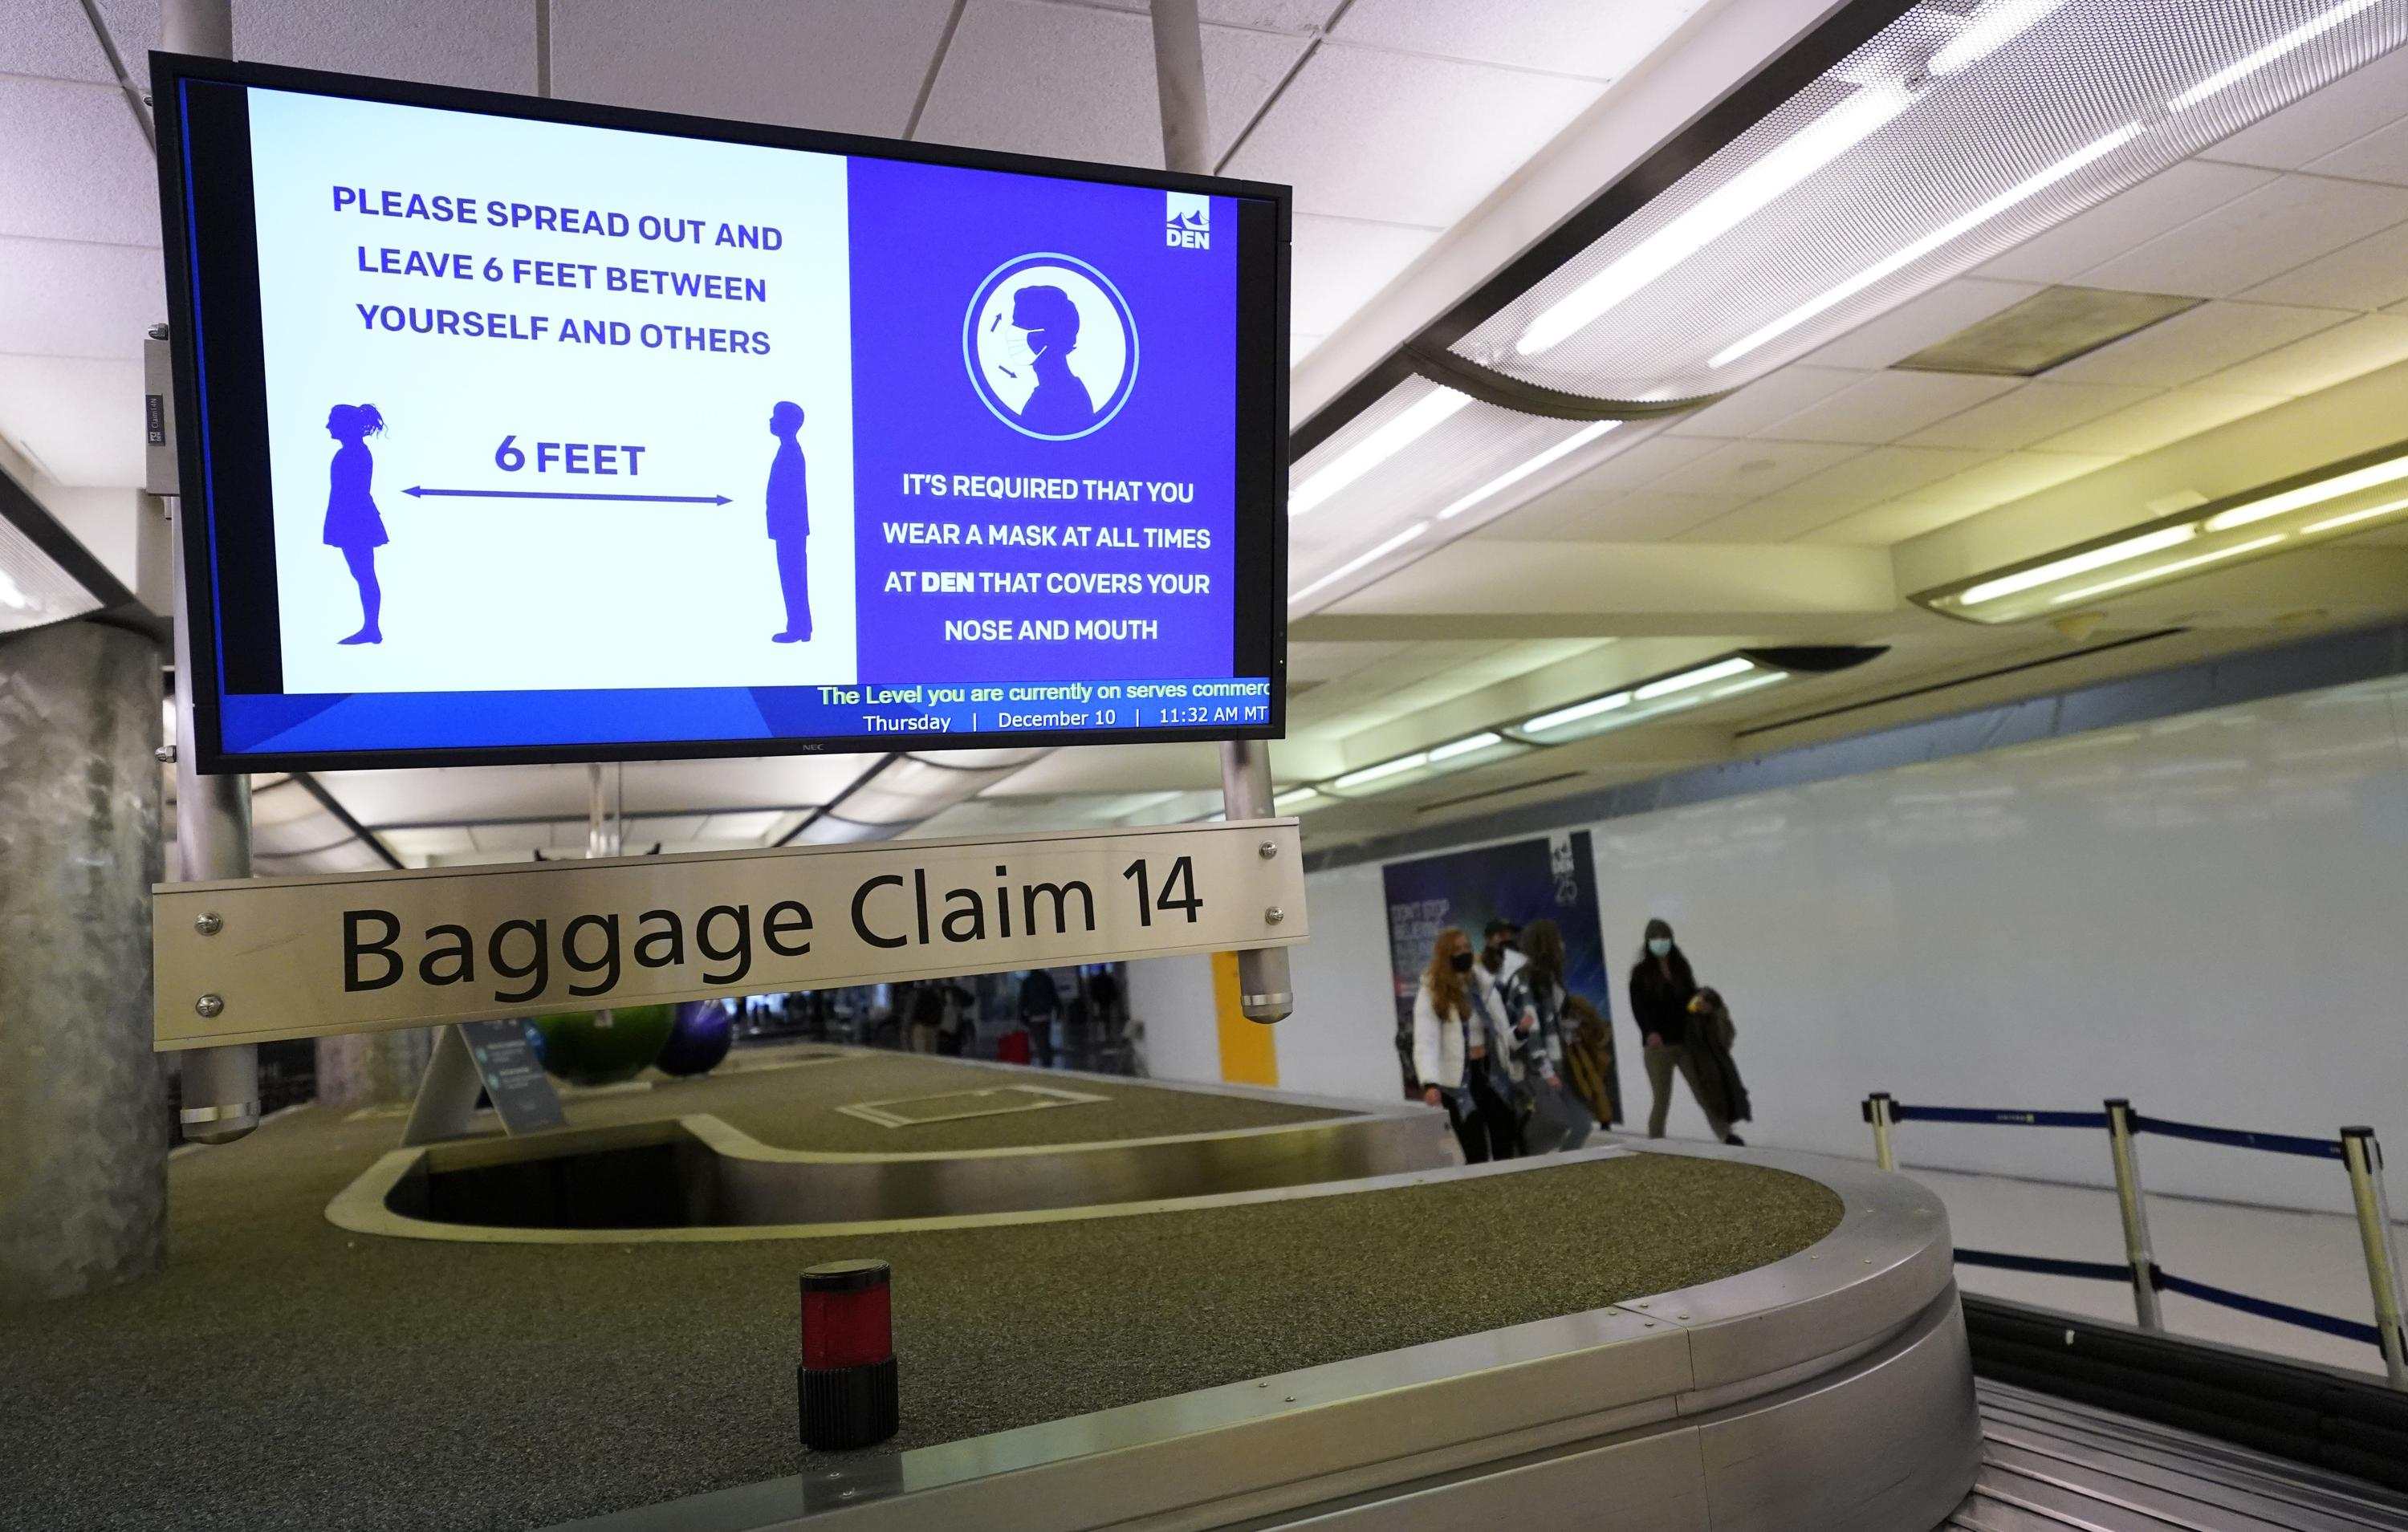 Flight attendants report high frequency of unruly passengers - Associated Press